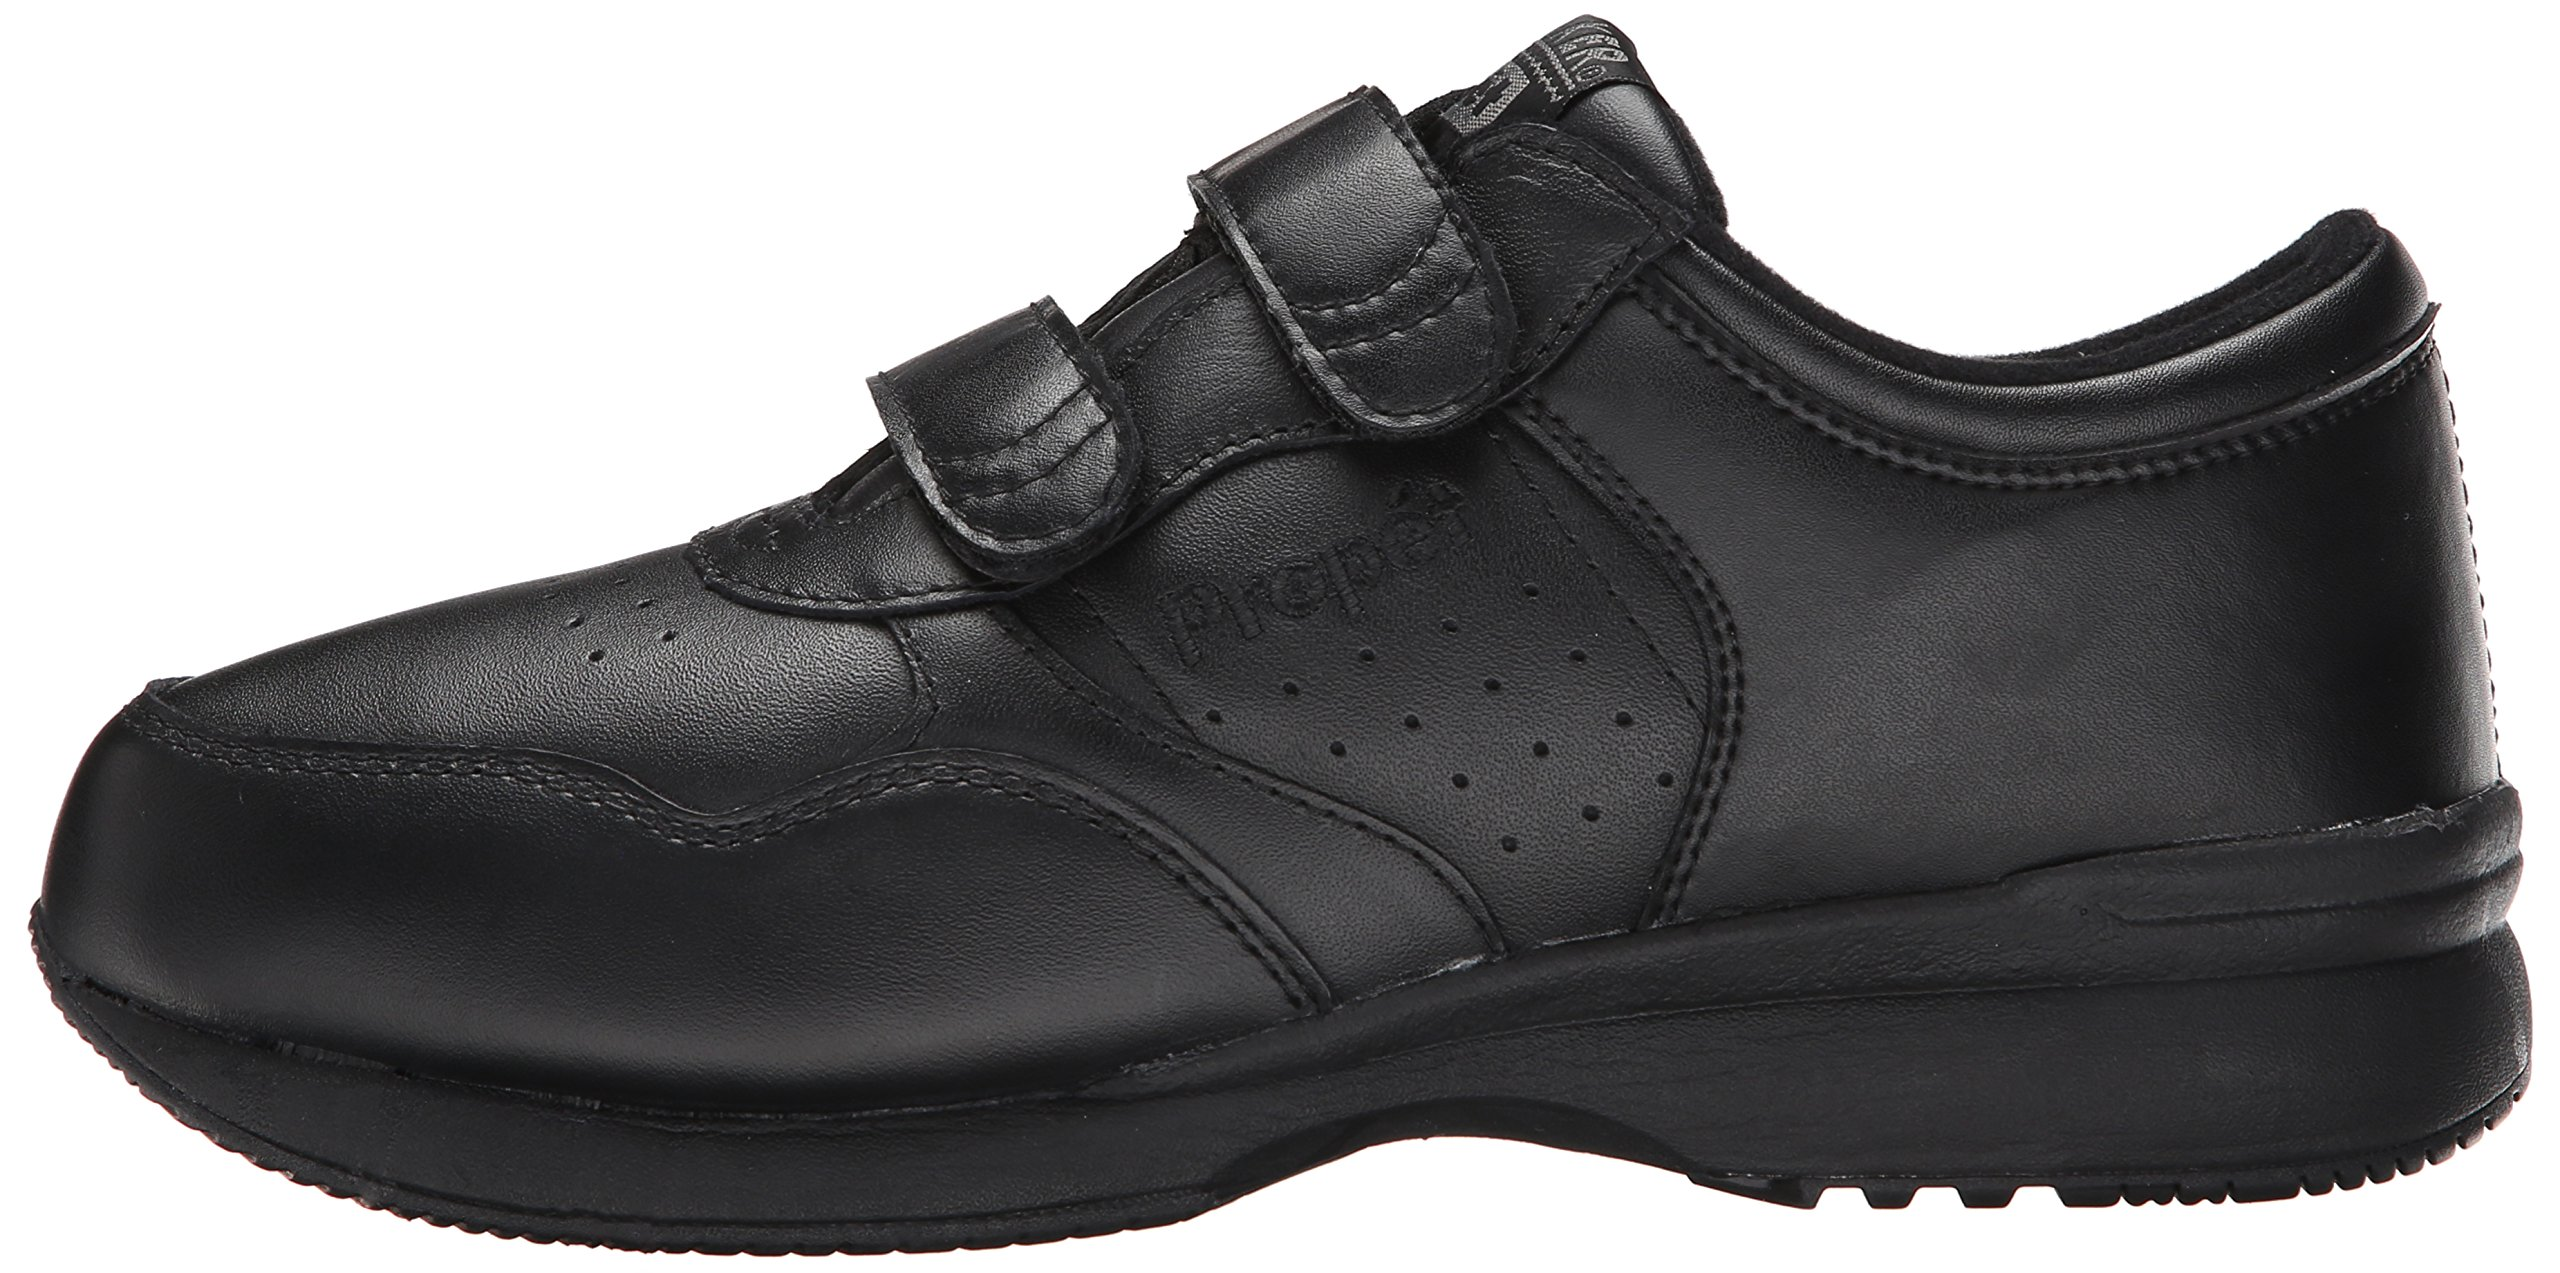 Propet-M3705-Men-039-s-LifeWalker-Strap-Walking-Shoes thumbnail 7